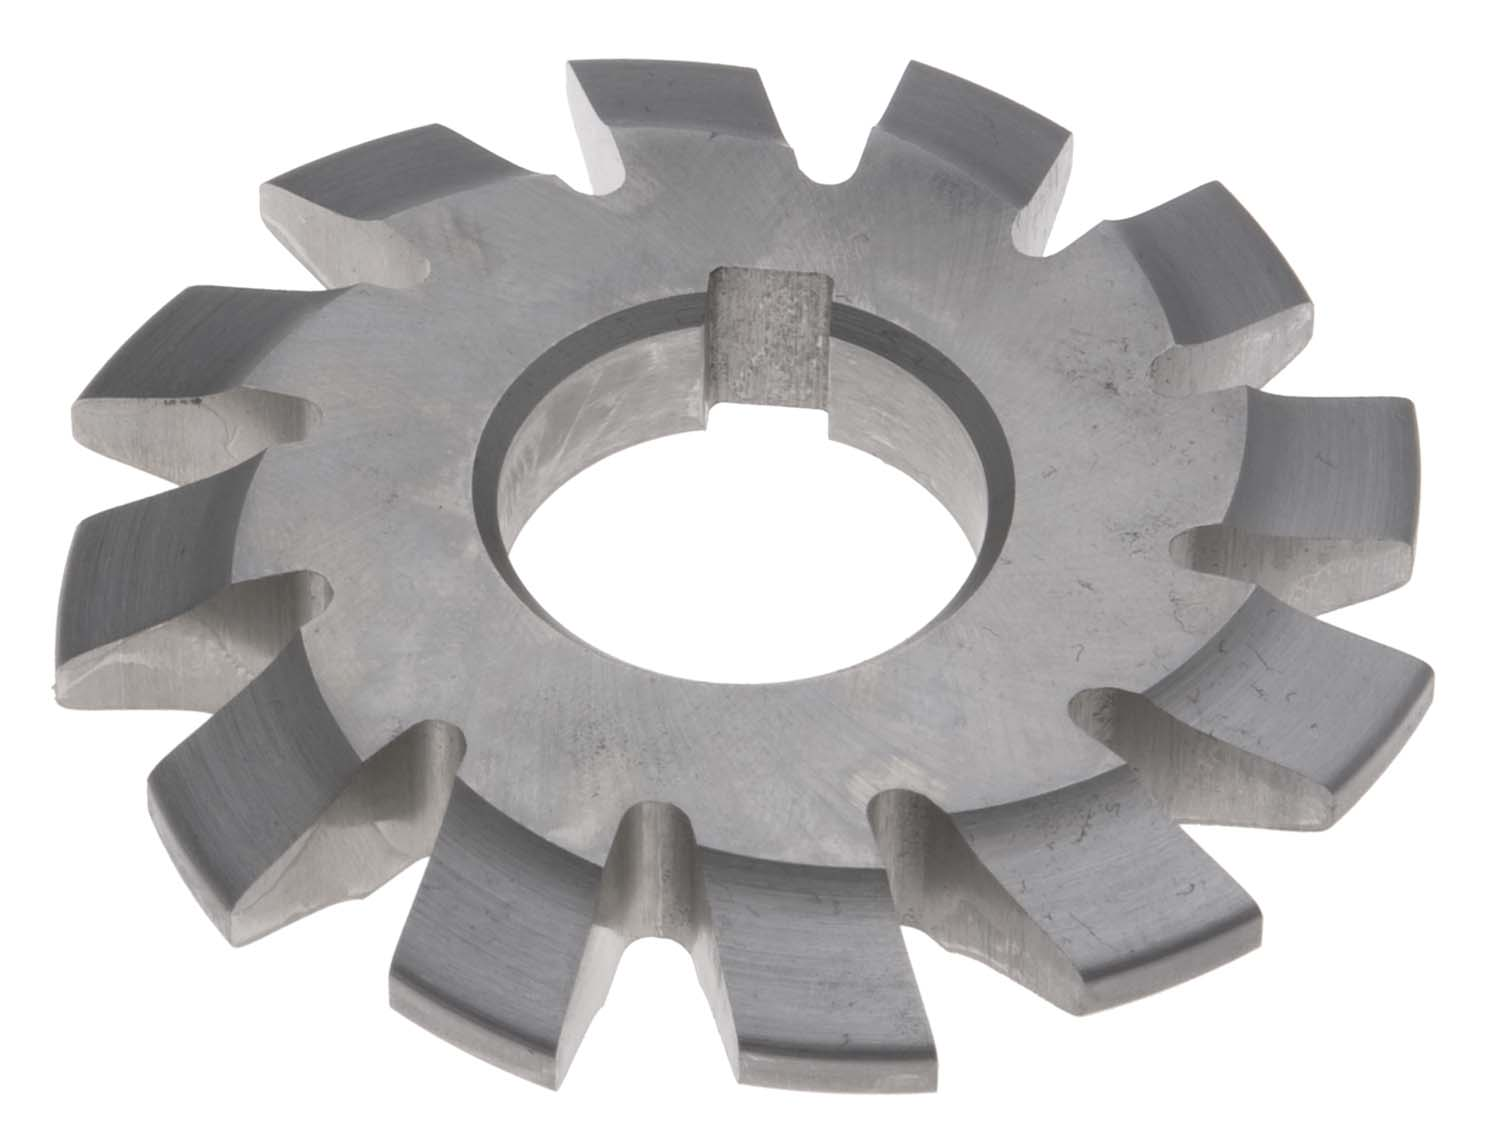 6 Diametral Pitch # 3  Involute Gear Cutter - 1 Inch ID - 14-1/2 Degree Pressure Angle